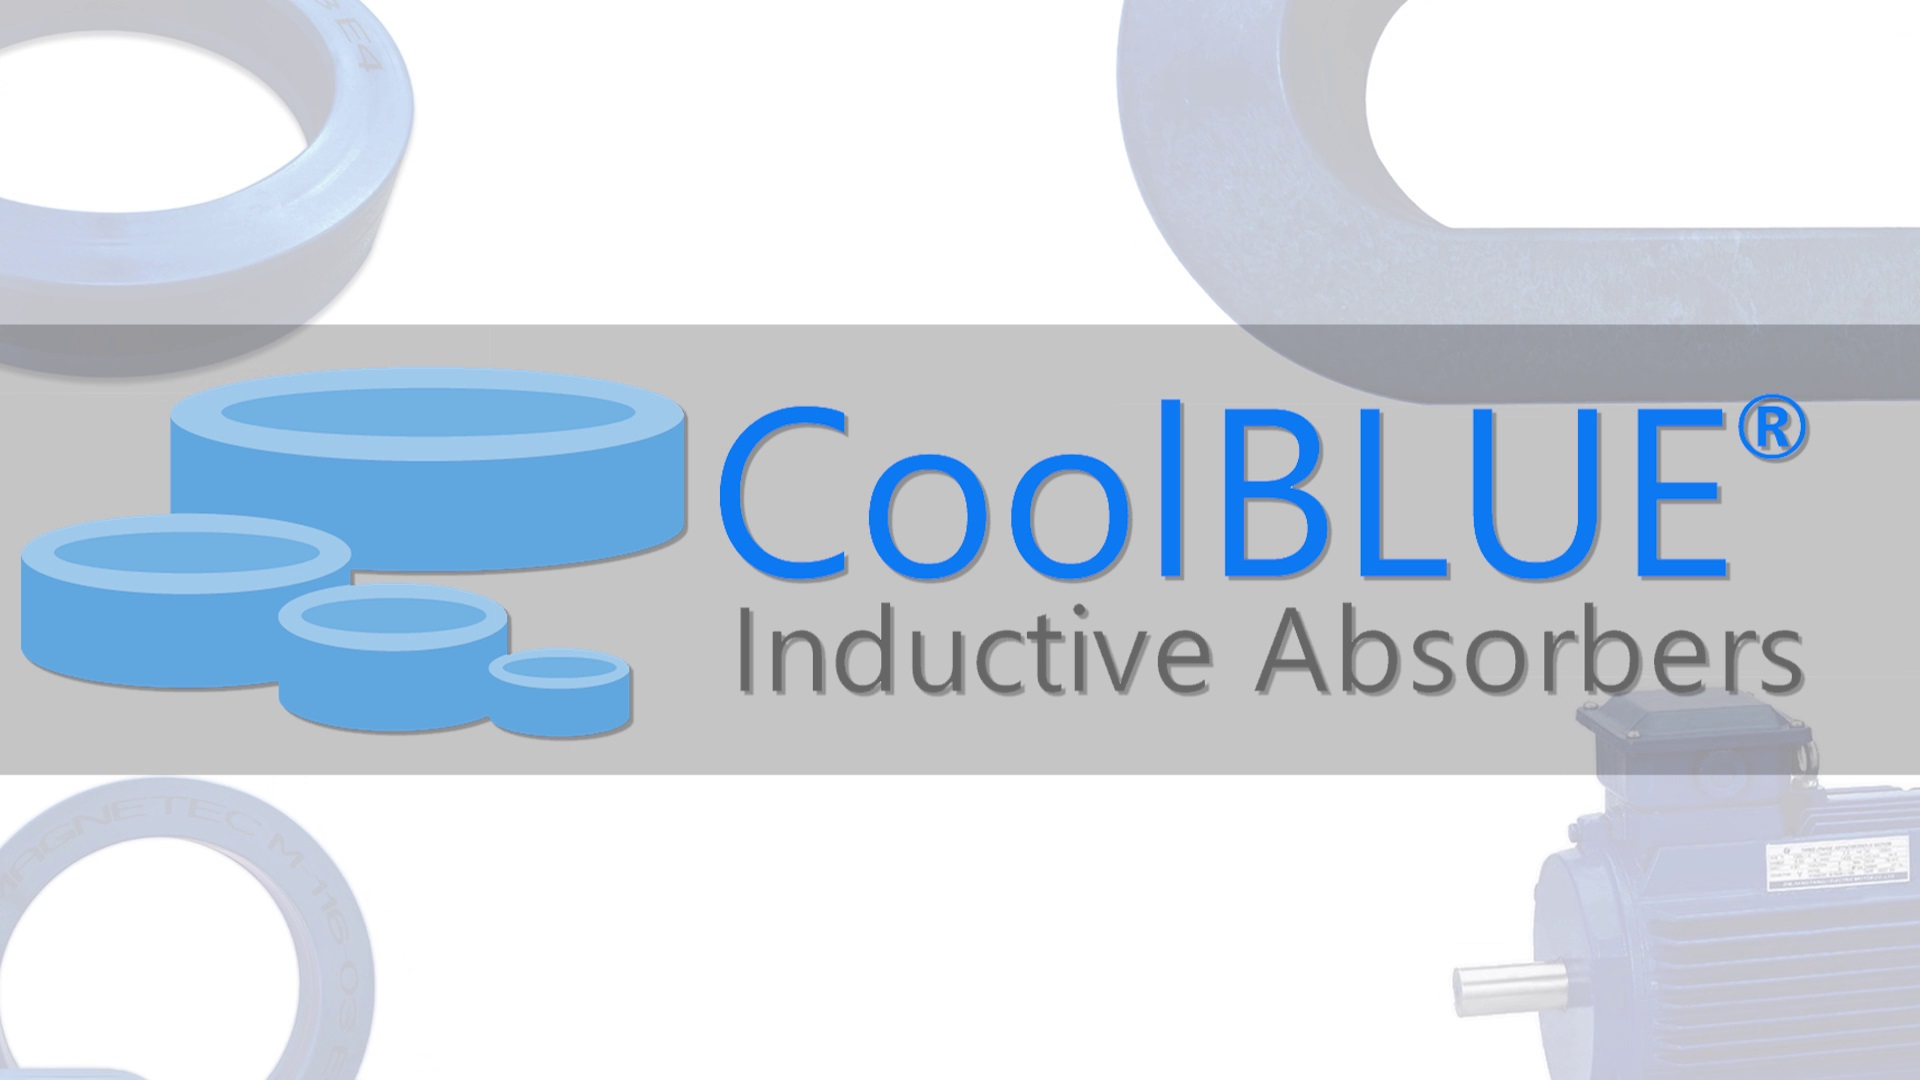 CoolBLUE-Inductive-Absorbers